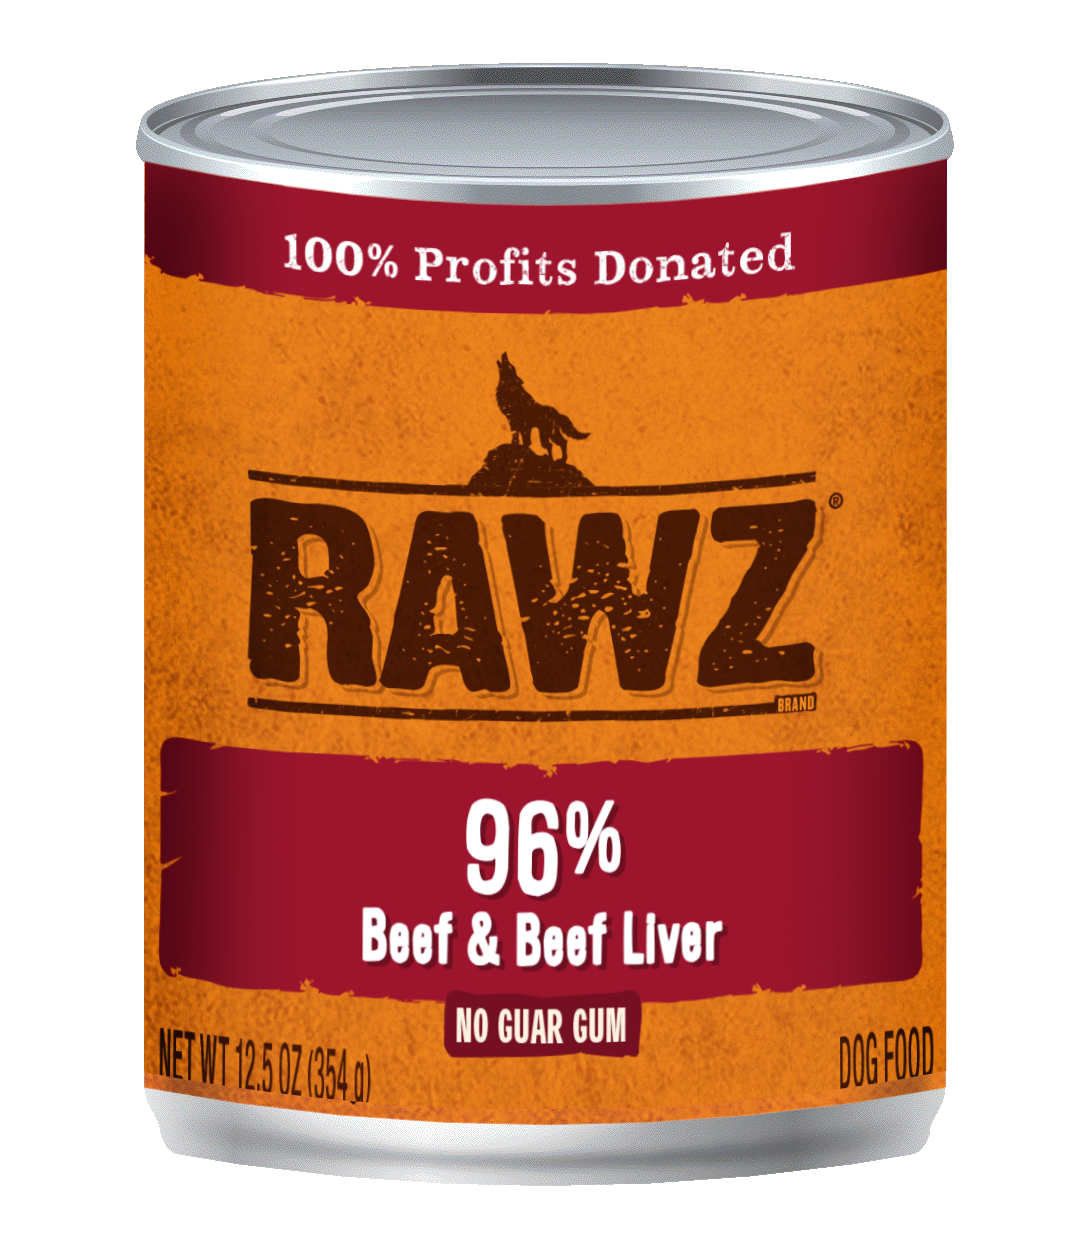 Beef & Beef Liver Recipe 96% Meat Gum Free Pâté Cans